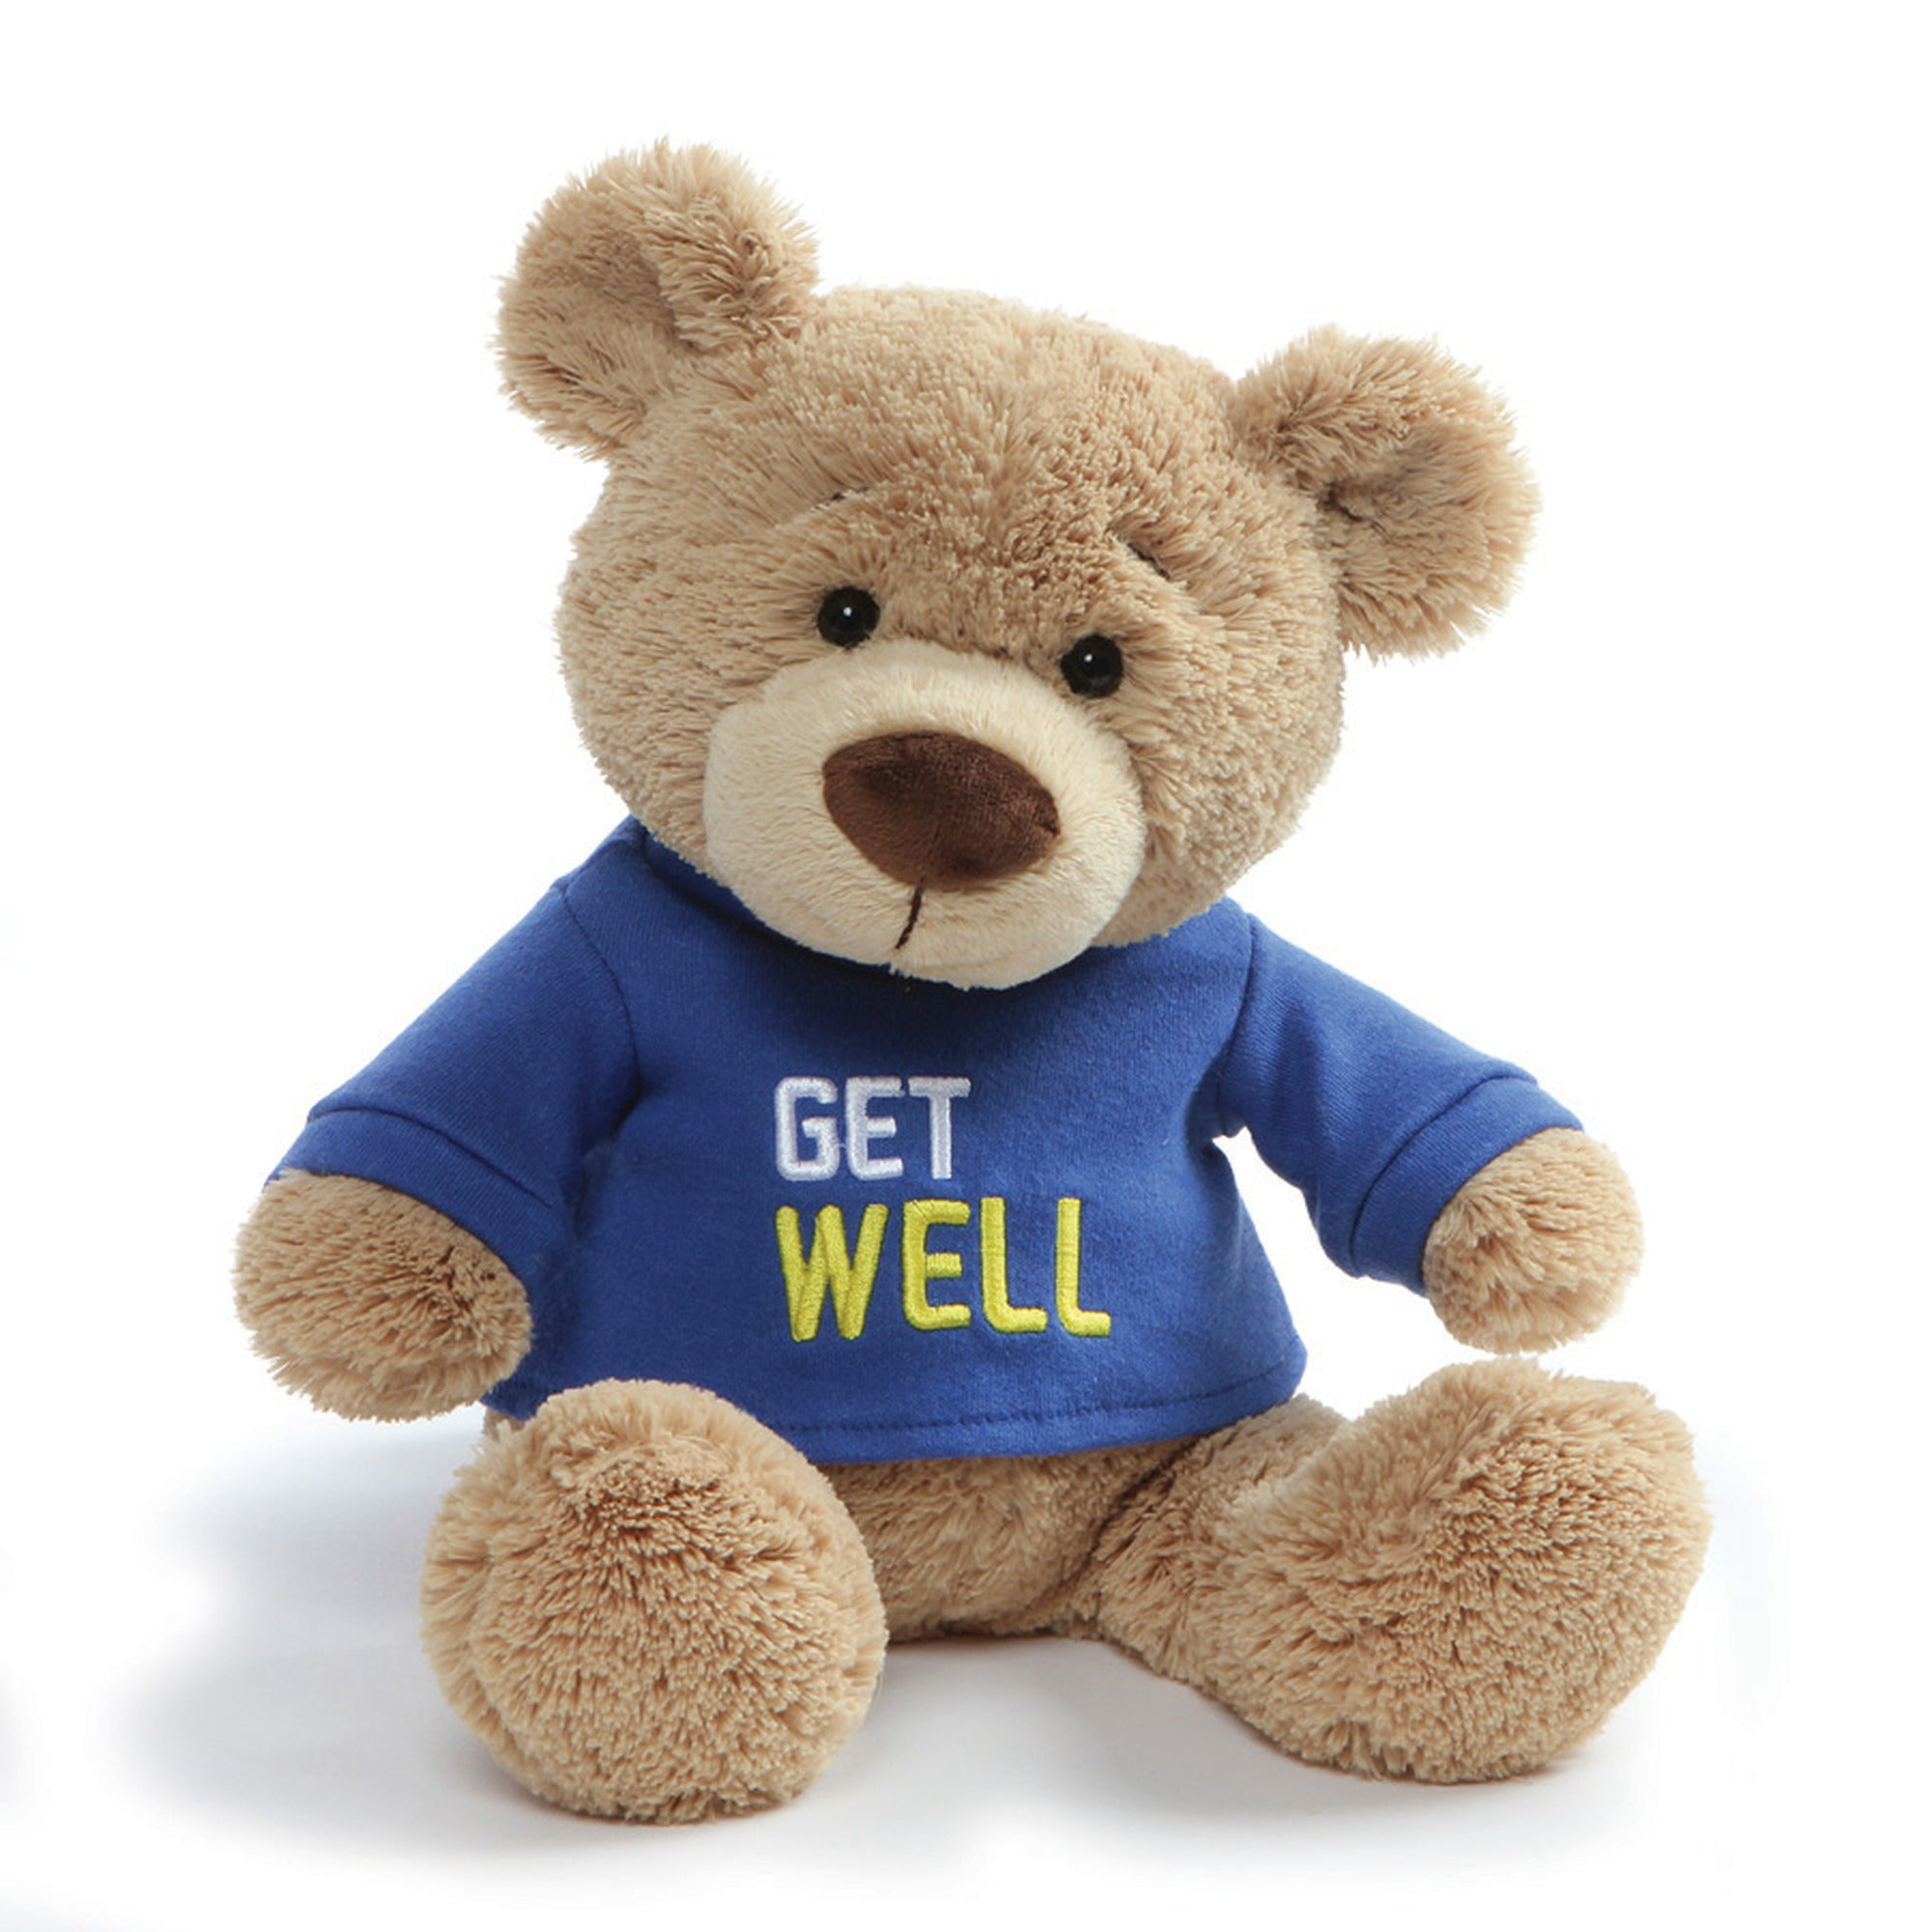 Gund - Get Well Bear - Blue - 12.5""